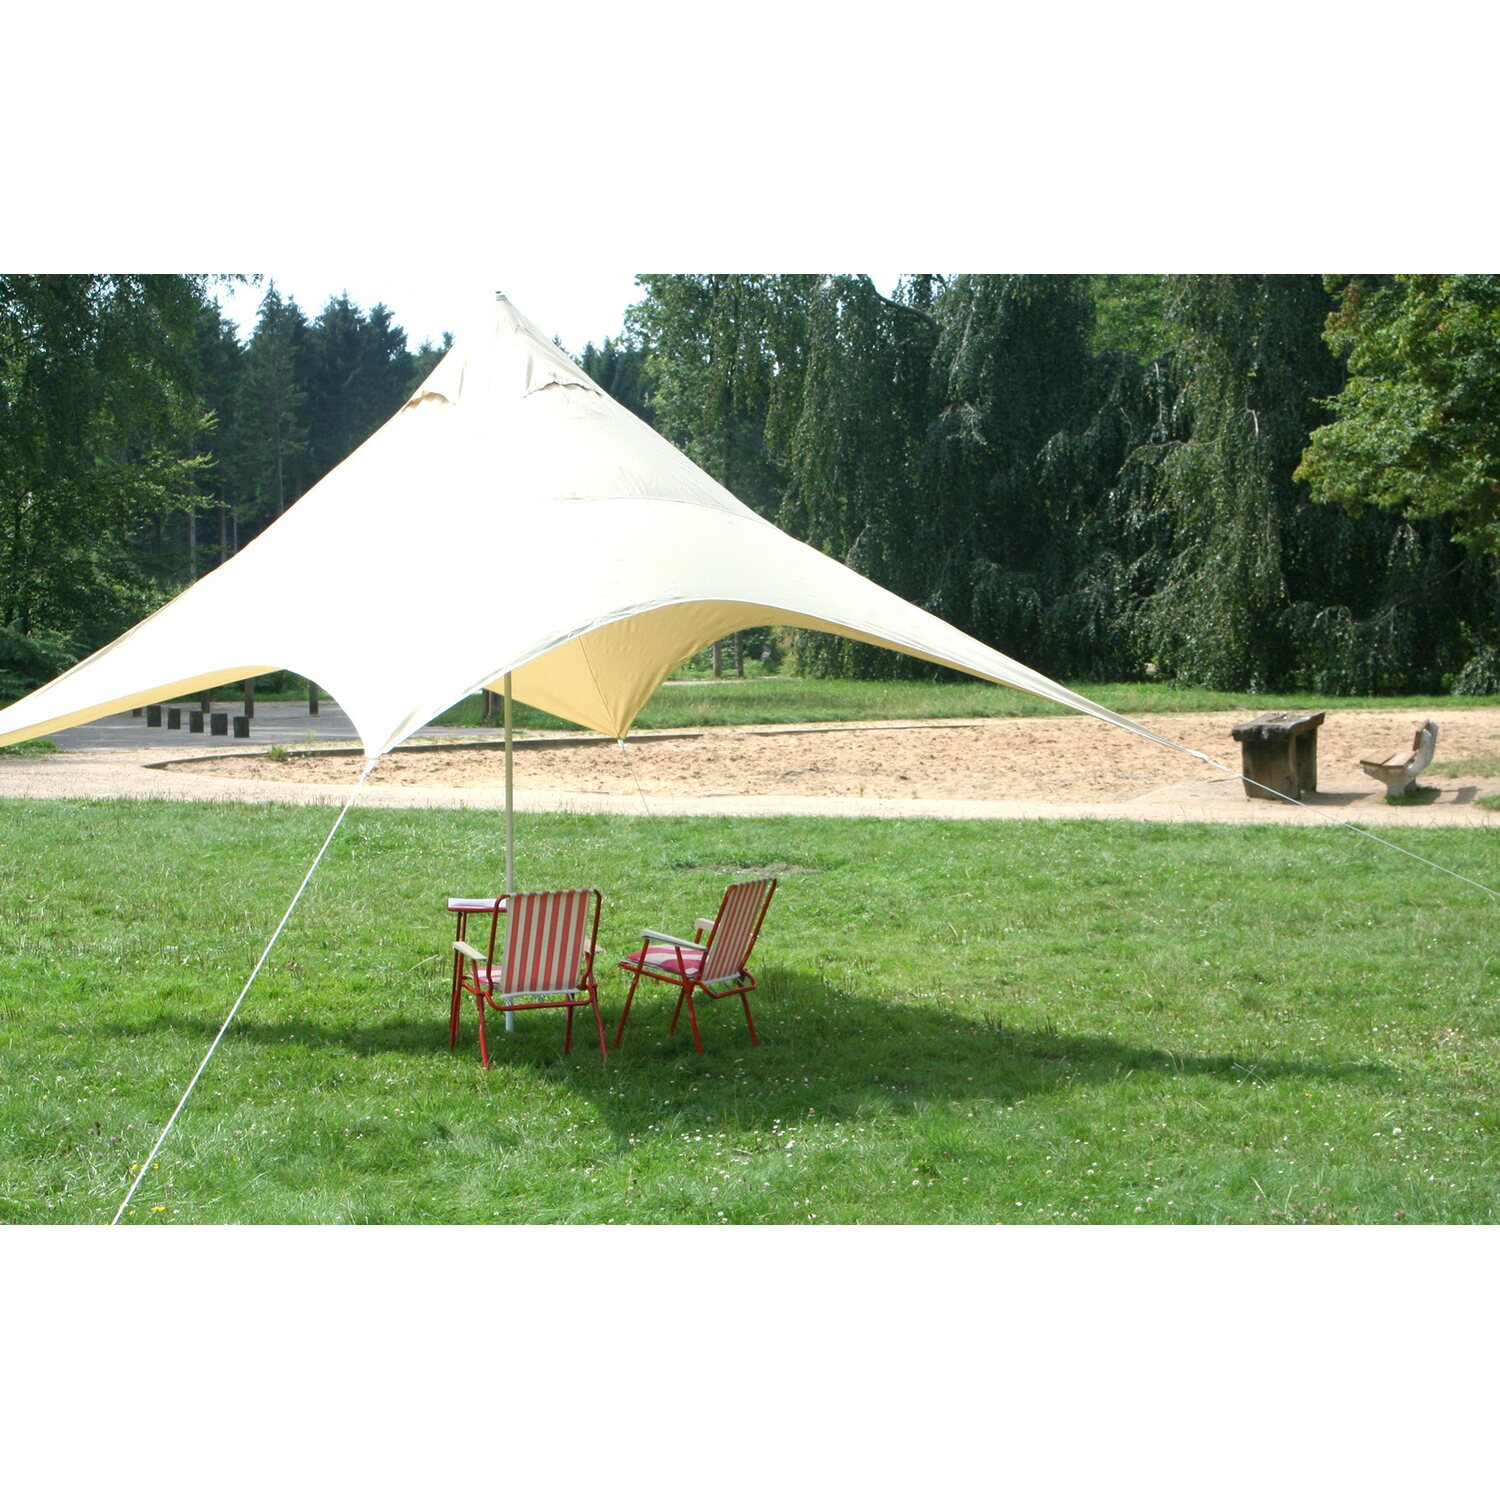 floracord camping pyramiden sonnensegel sand 400 cm x 400. Black Bedroom Furniture Sets. Home Design Ideas